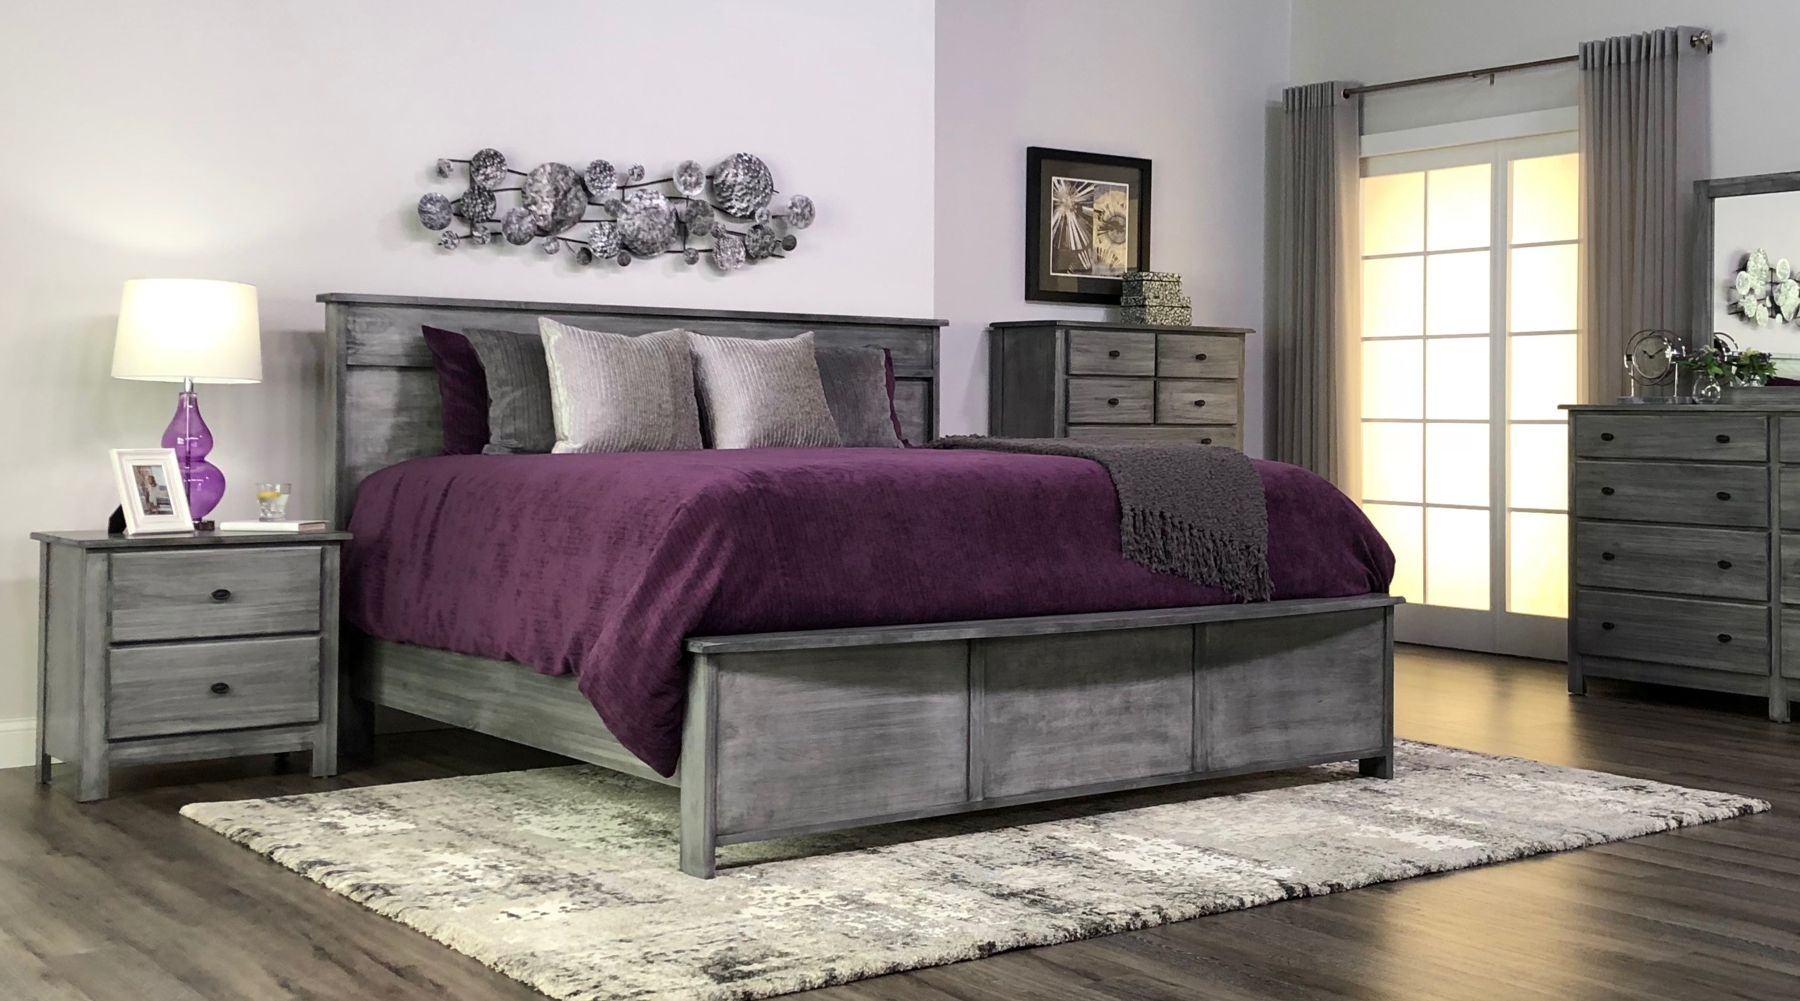 Our New Prescott Collection Is Available At HOM Furniture! Our New Prescott  Collection Is Available At HOM Furniture!